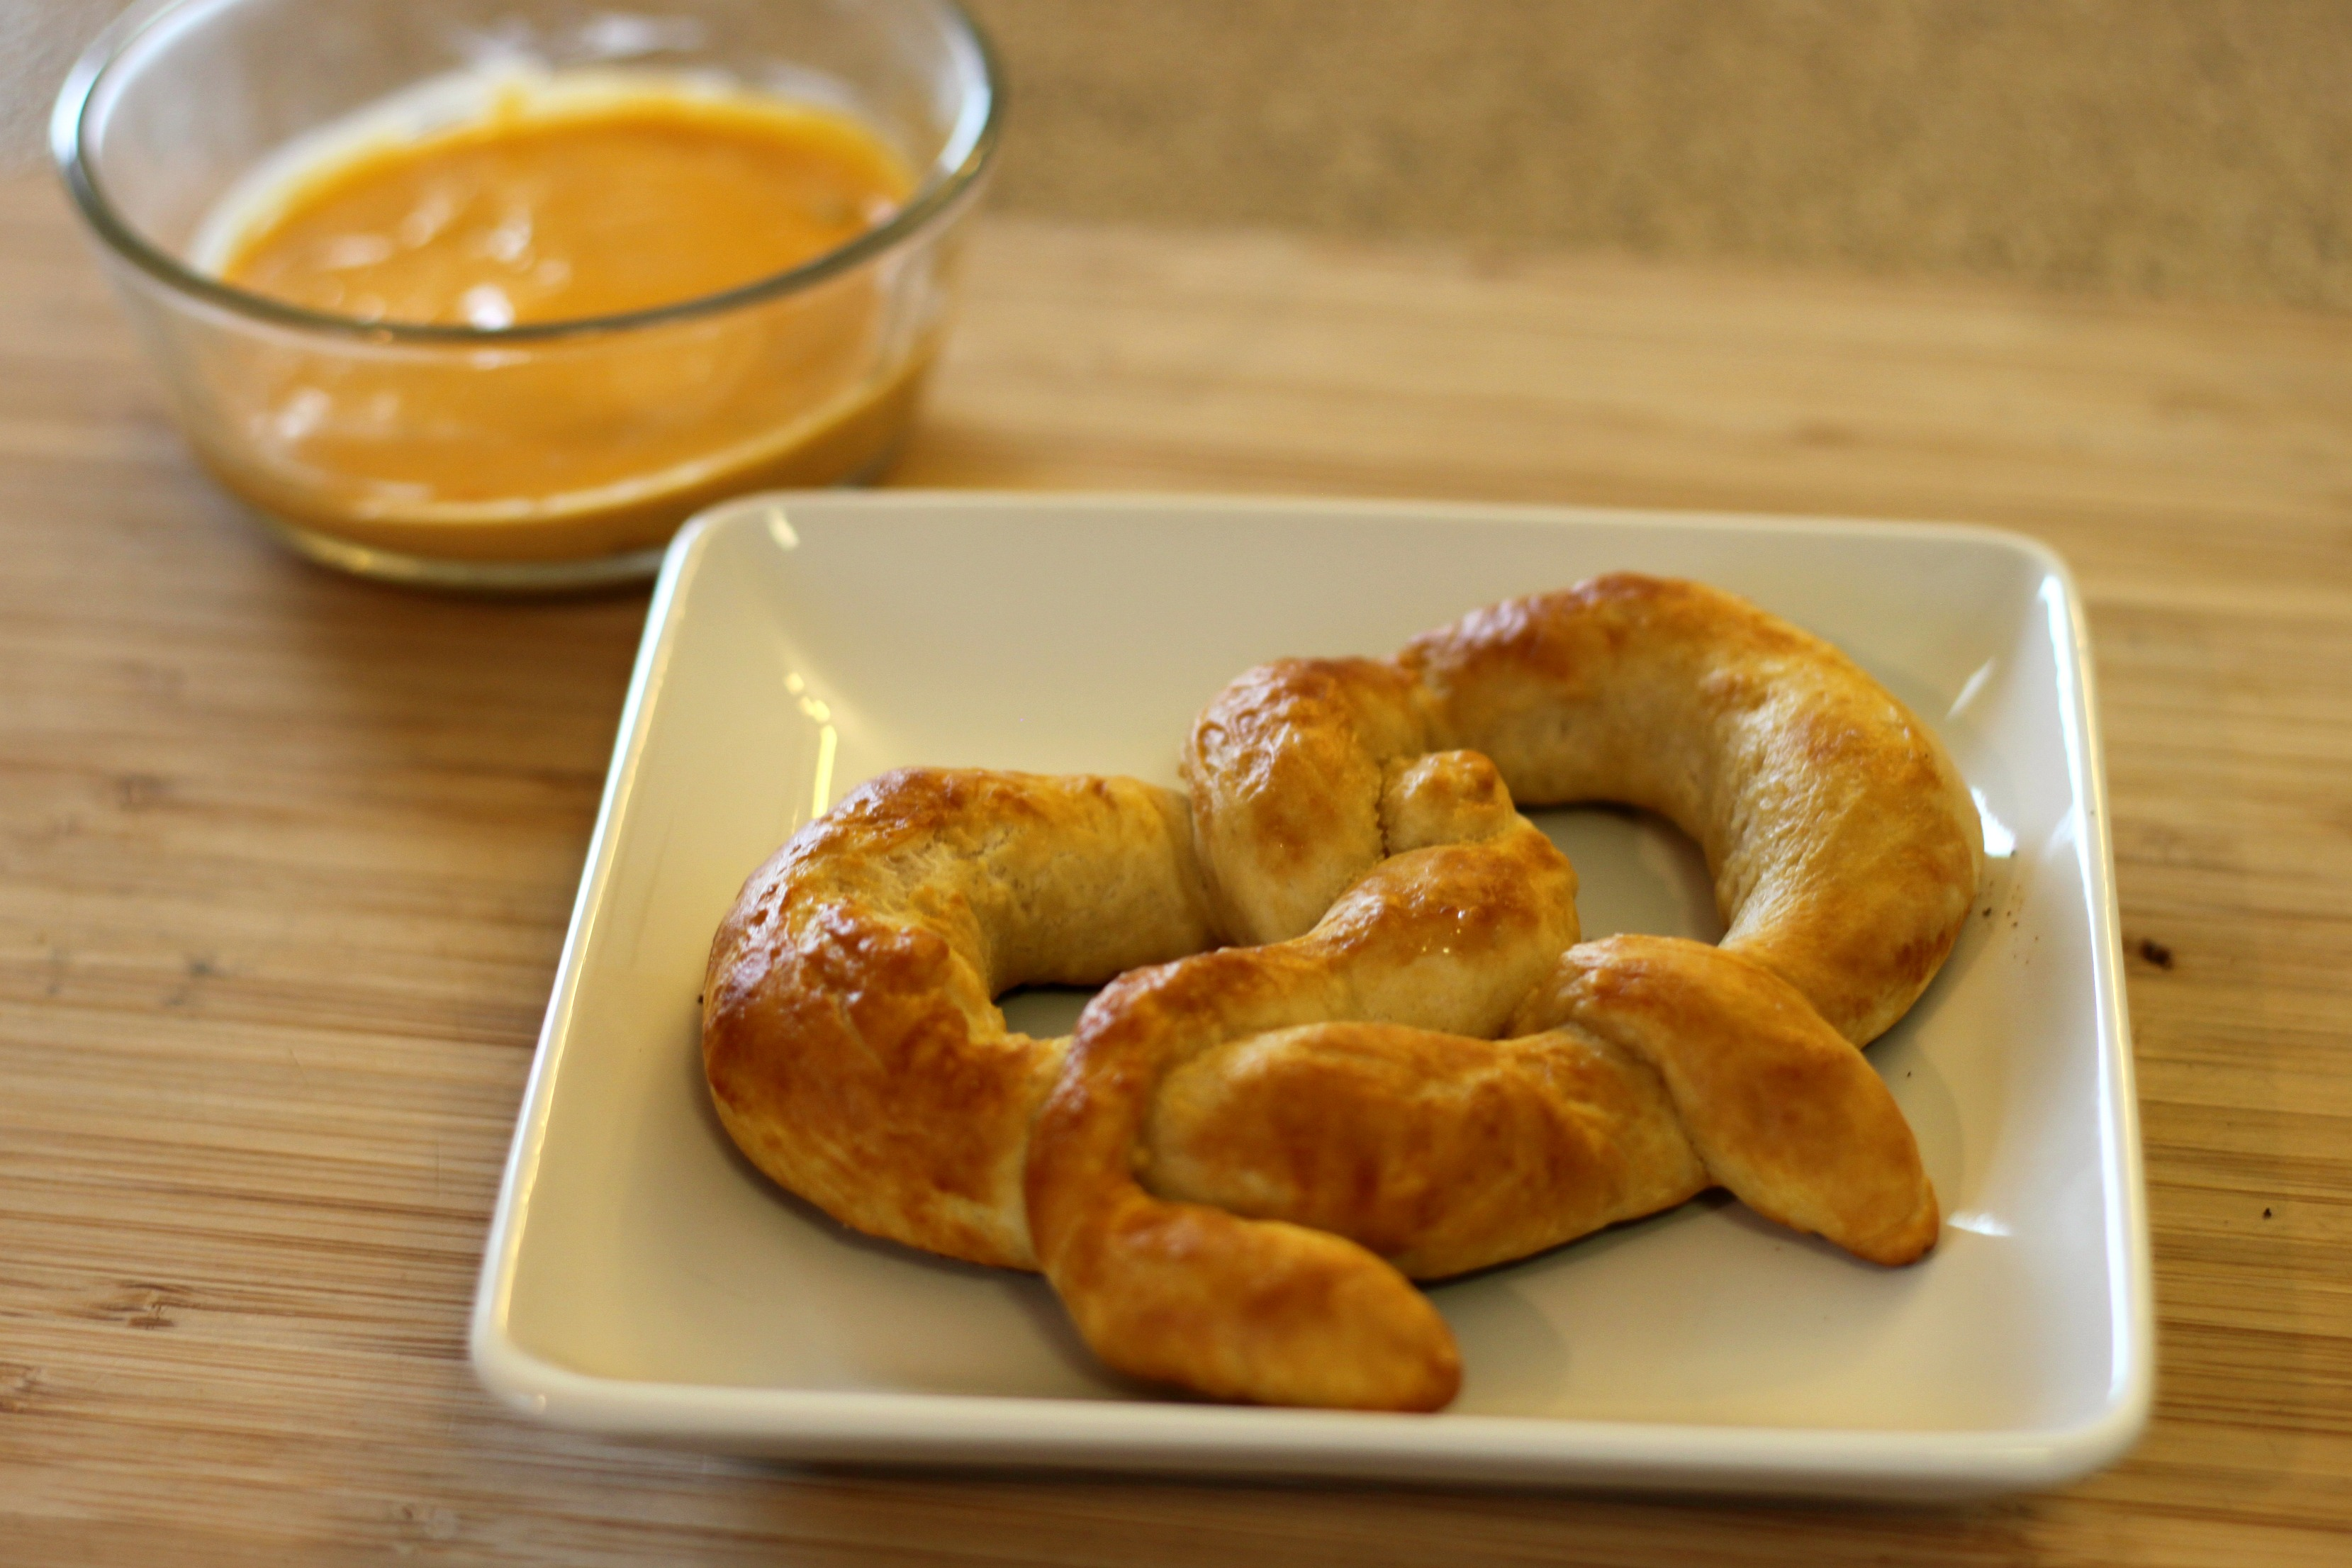 Homemade Pretzels (Almost Auntie Anne's!)